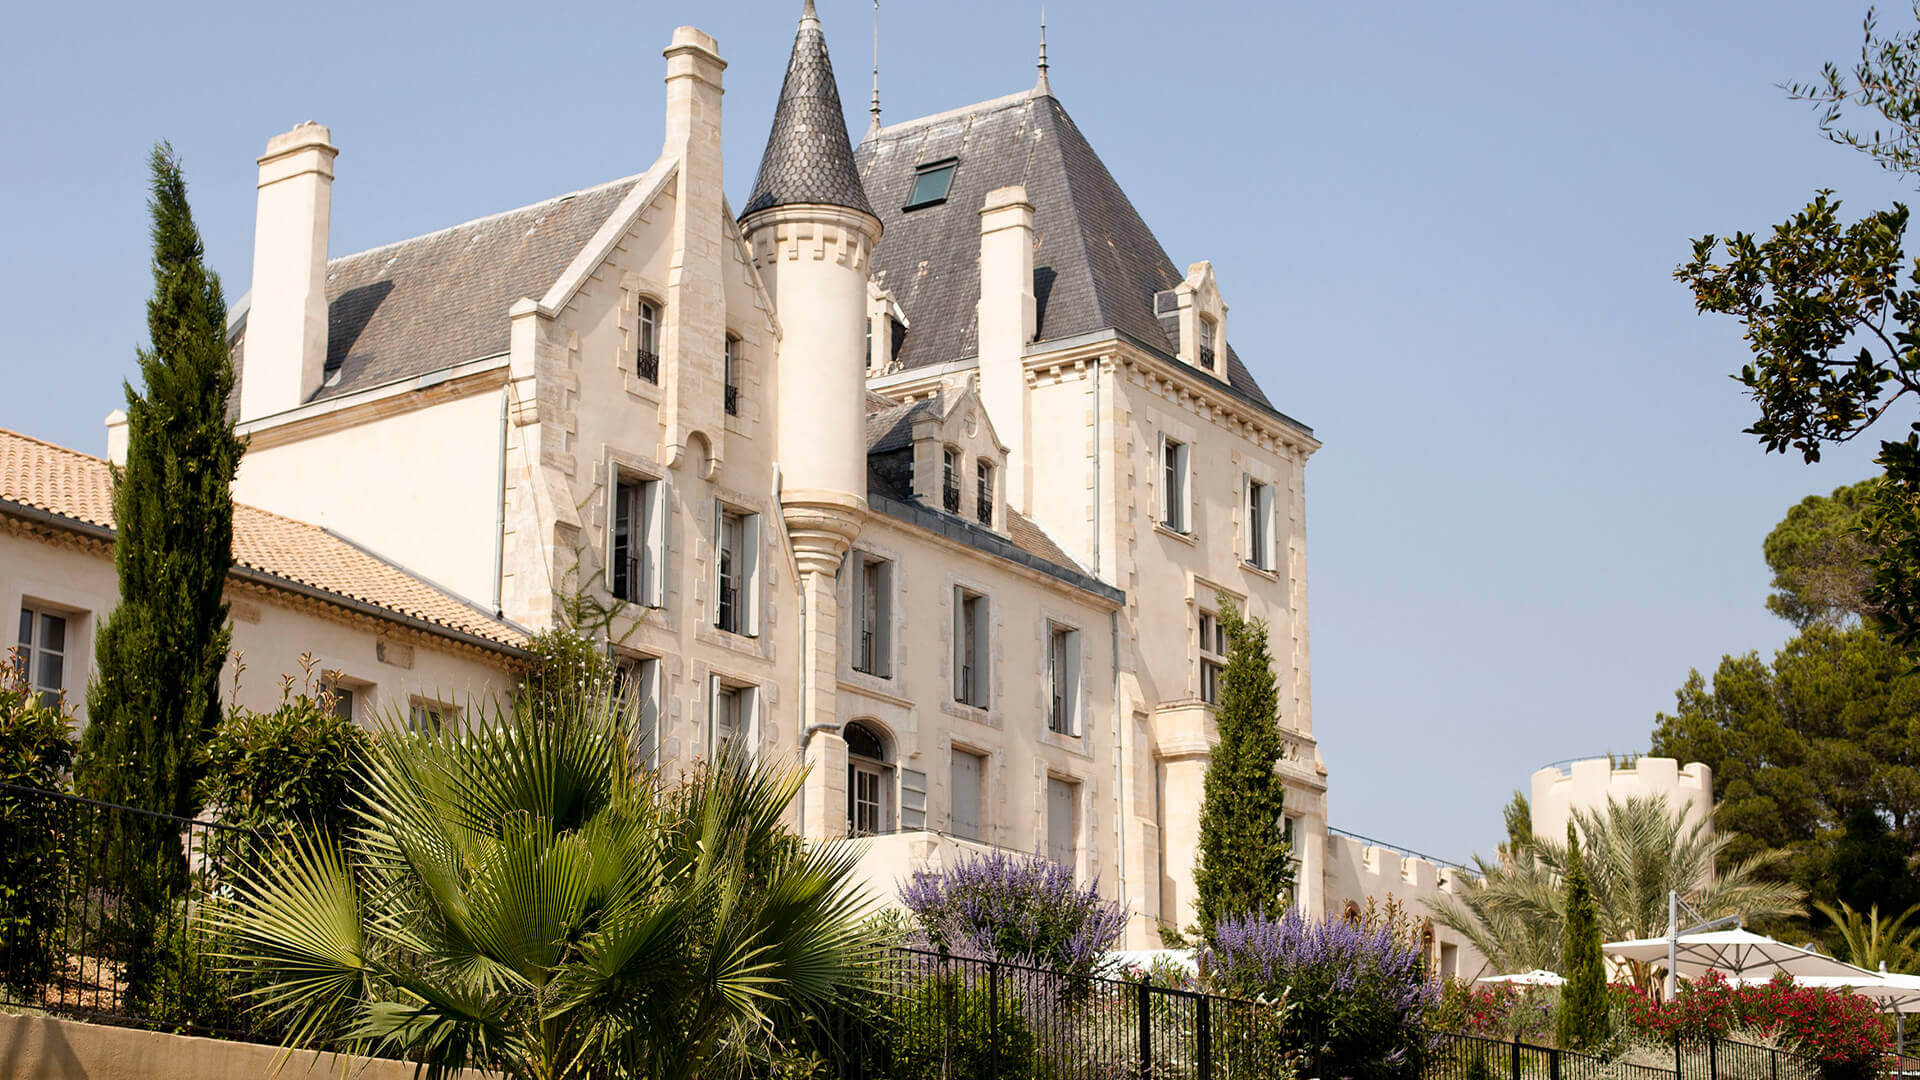 Luxury chateau front